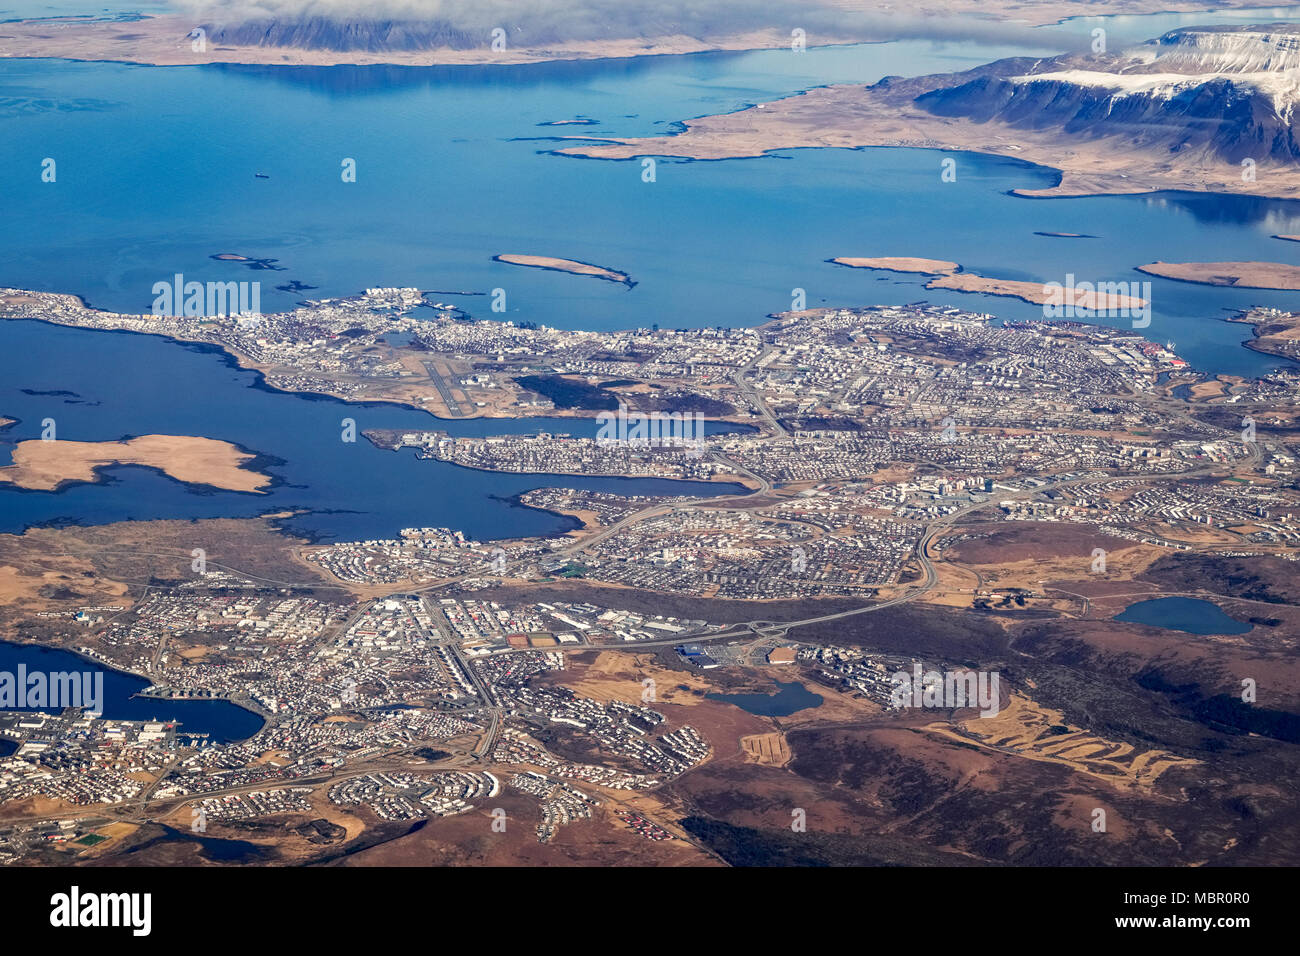 Aerial view of Reykjavik, Iceland, with the bay of Hofsvik and the Snaefellsness peninsula visible at the top Stock Photo